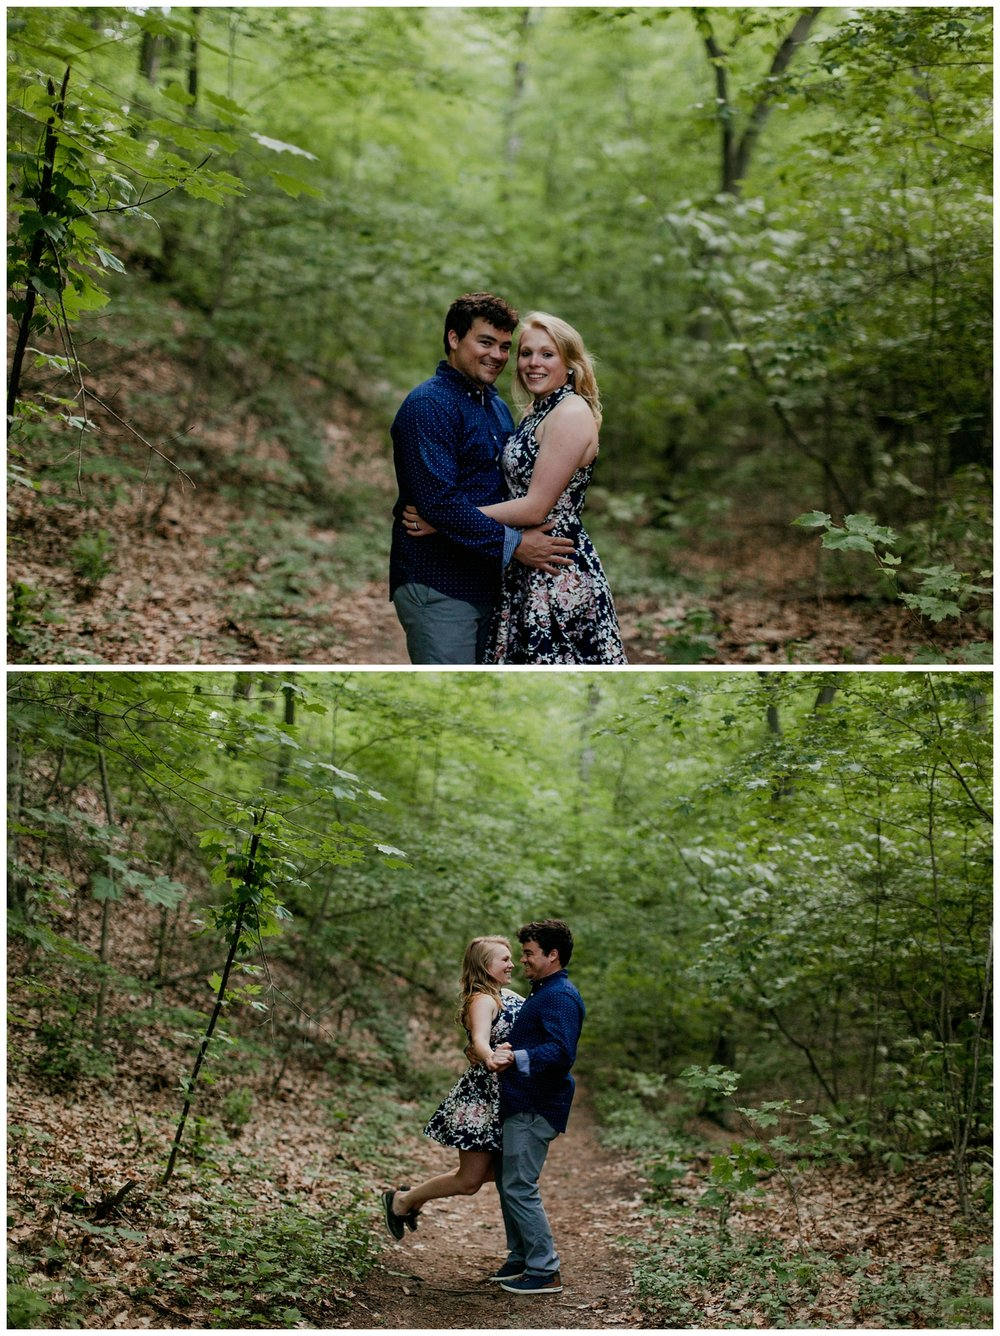 warrendunesengagementweddingphotographybridgmansawyerstevensvilletaborhillwinery15.jpg